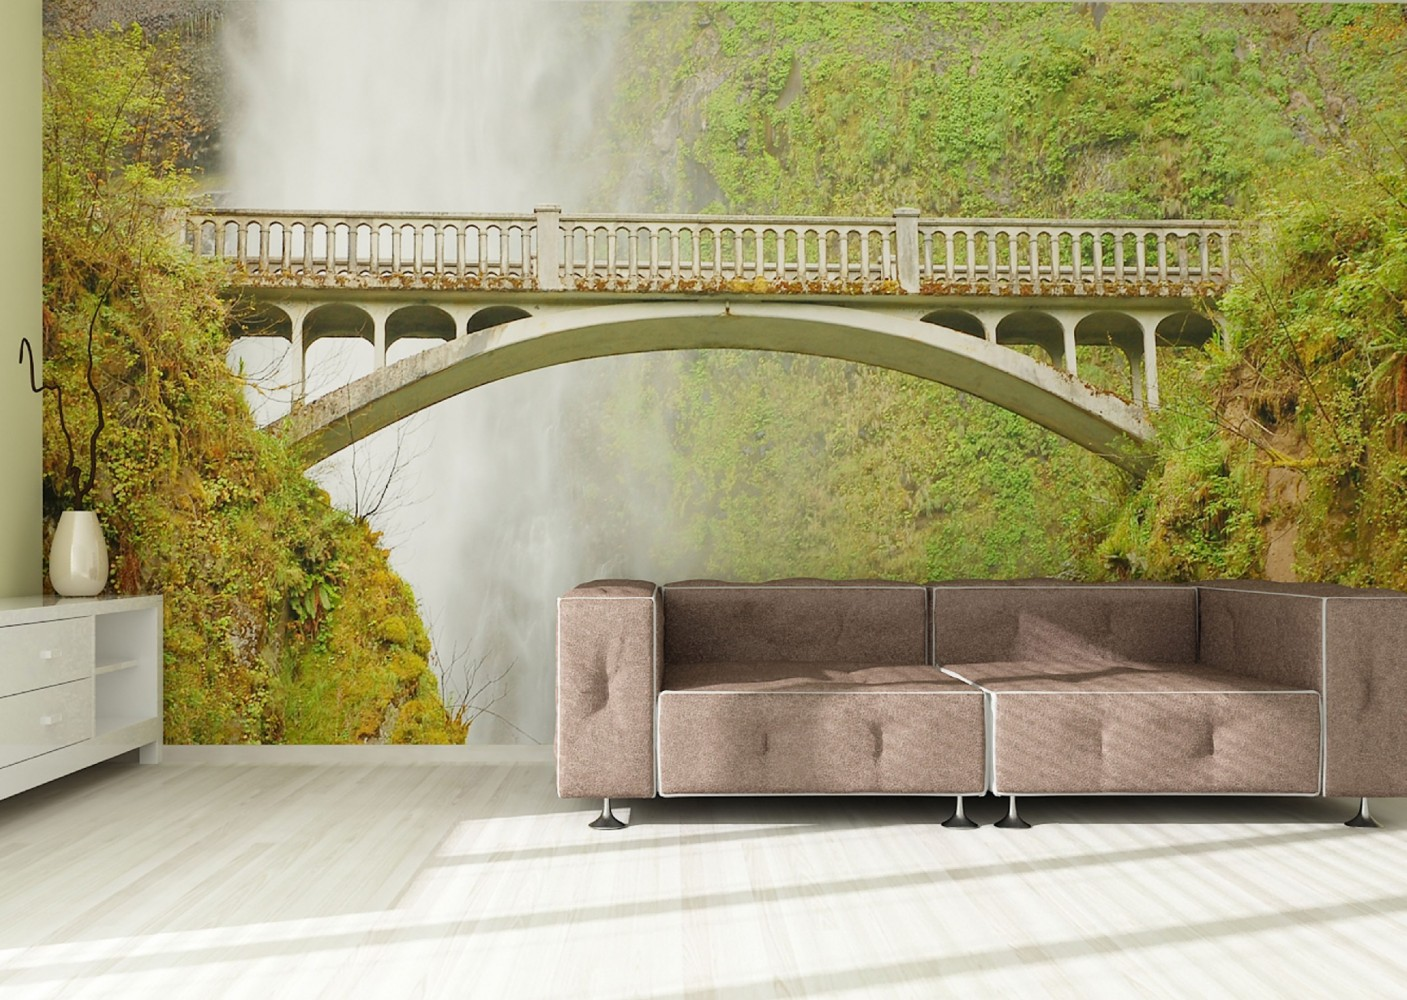 fototapete tapete natur wildniss br cke wasserfall foto 360 cm x 270 cm. Black Bedroom Furniture Sets. Home Design Ideas